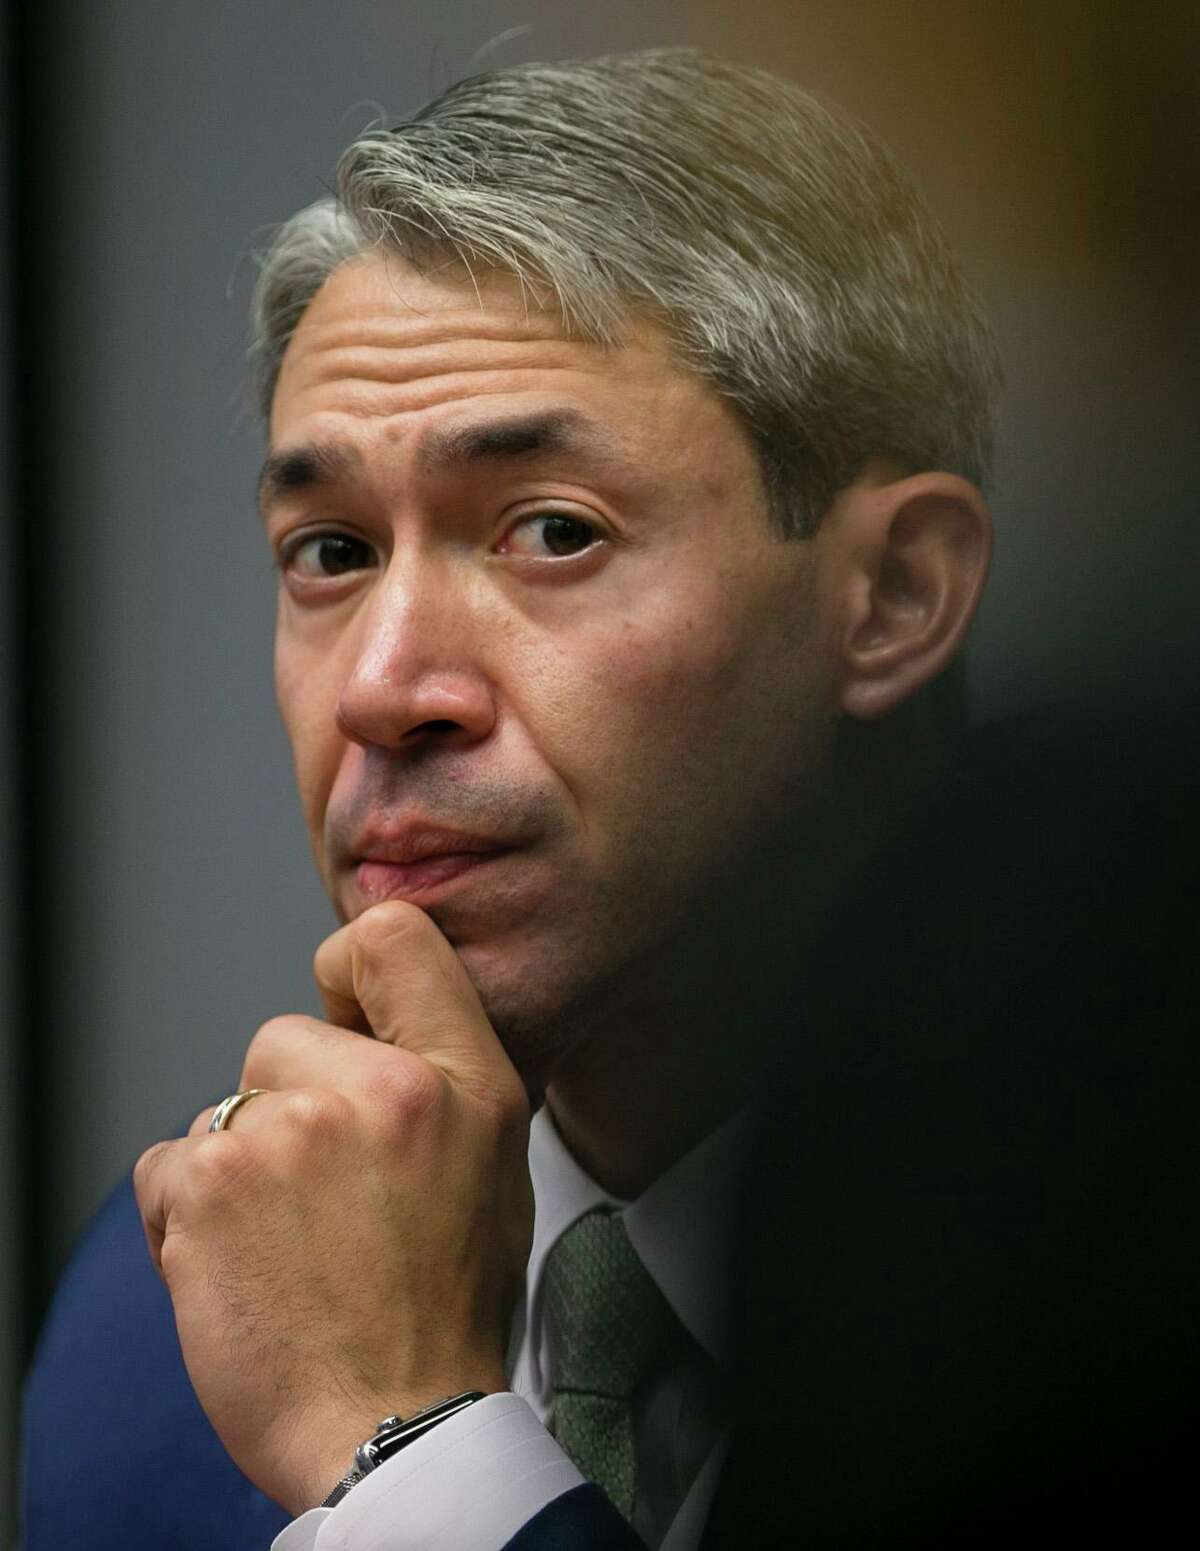 """Mayor Ron Nirenberg """"We've got to ensure that our calculus for creating a healthy and safe community are more than just what we spend on public safety."""" """"In a sense from a program and infrastructure and services standpoint, things like libraries and parks and safe streets and child nutrition programs, those things are being tightened up every single day as our budgets grow, and so if we're going to do that, we end up in a situation where we're producing the results that we have to police, and there's something wrong with that. We have to start with building safe and healthy communities in every part of our community and that is way more than just policing it."""""""